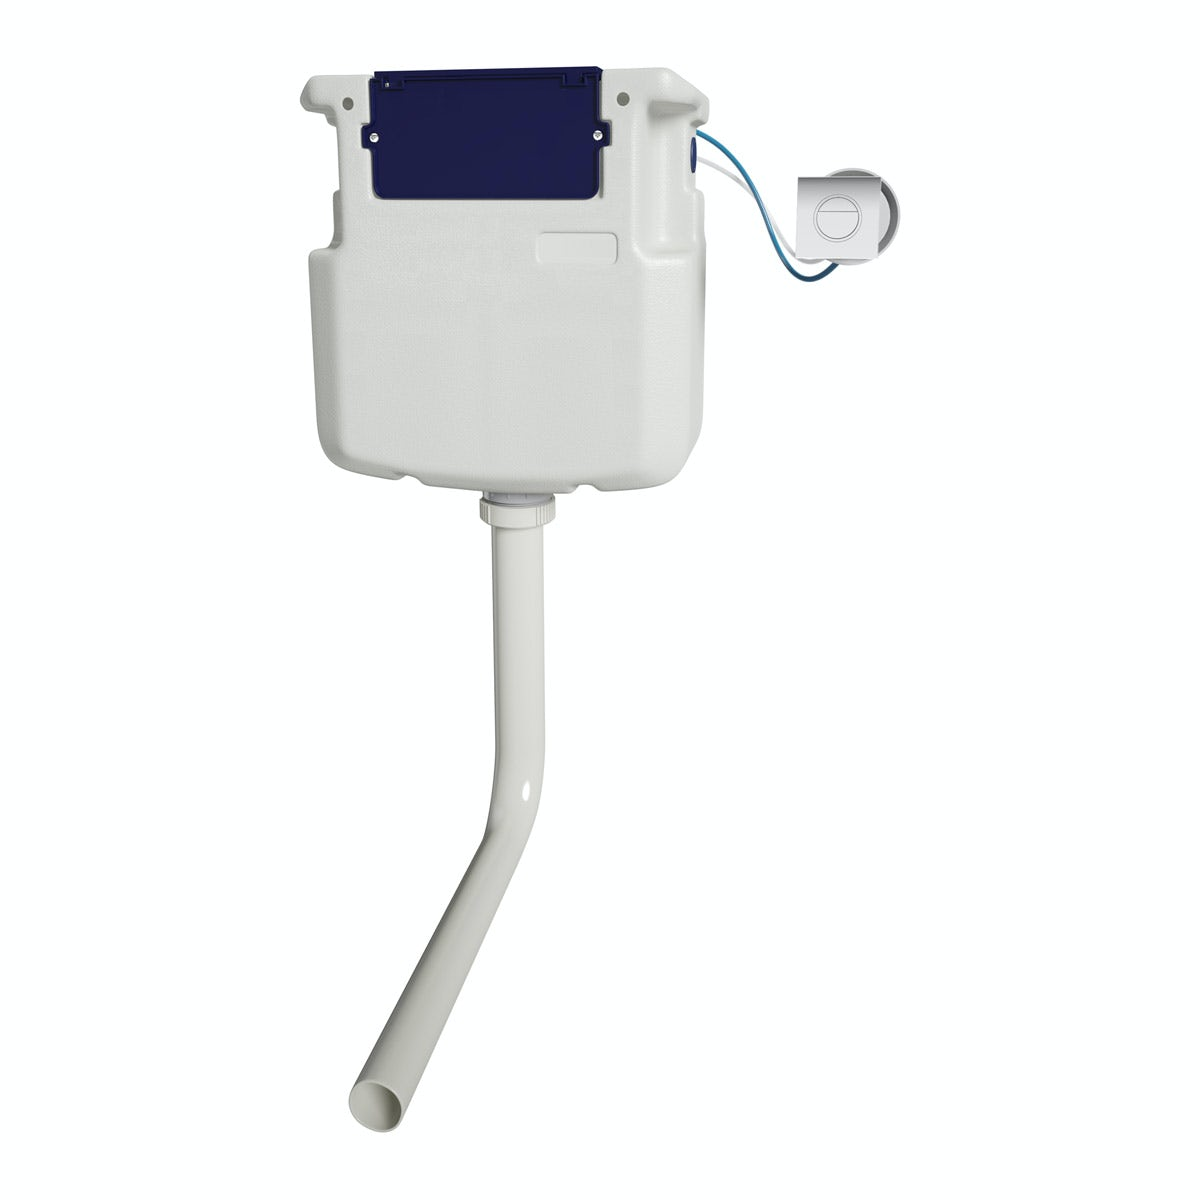 Pneumatic concealed cistern with square push button